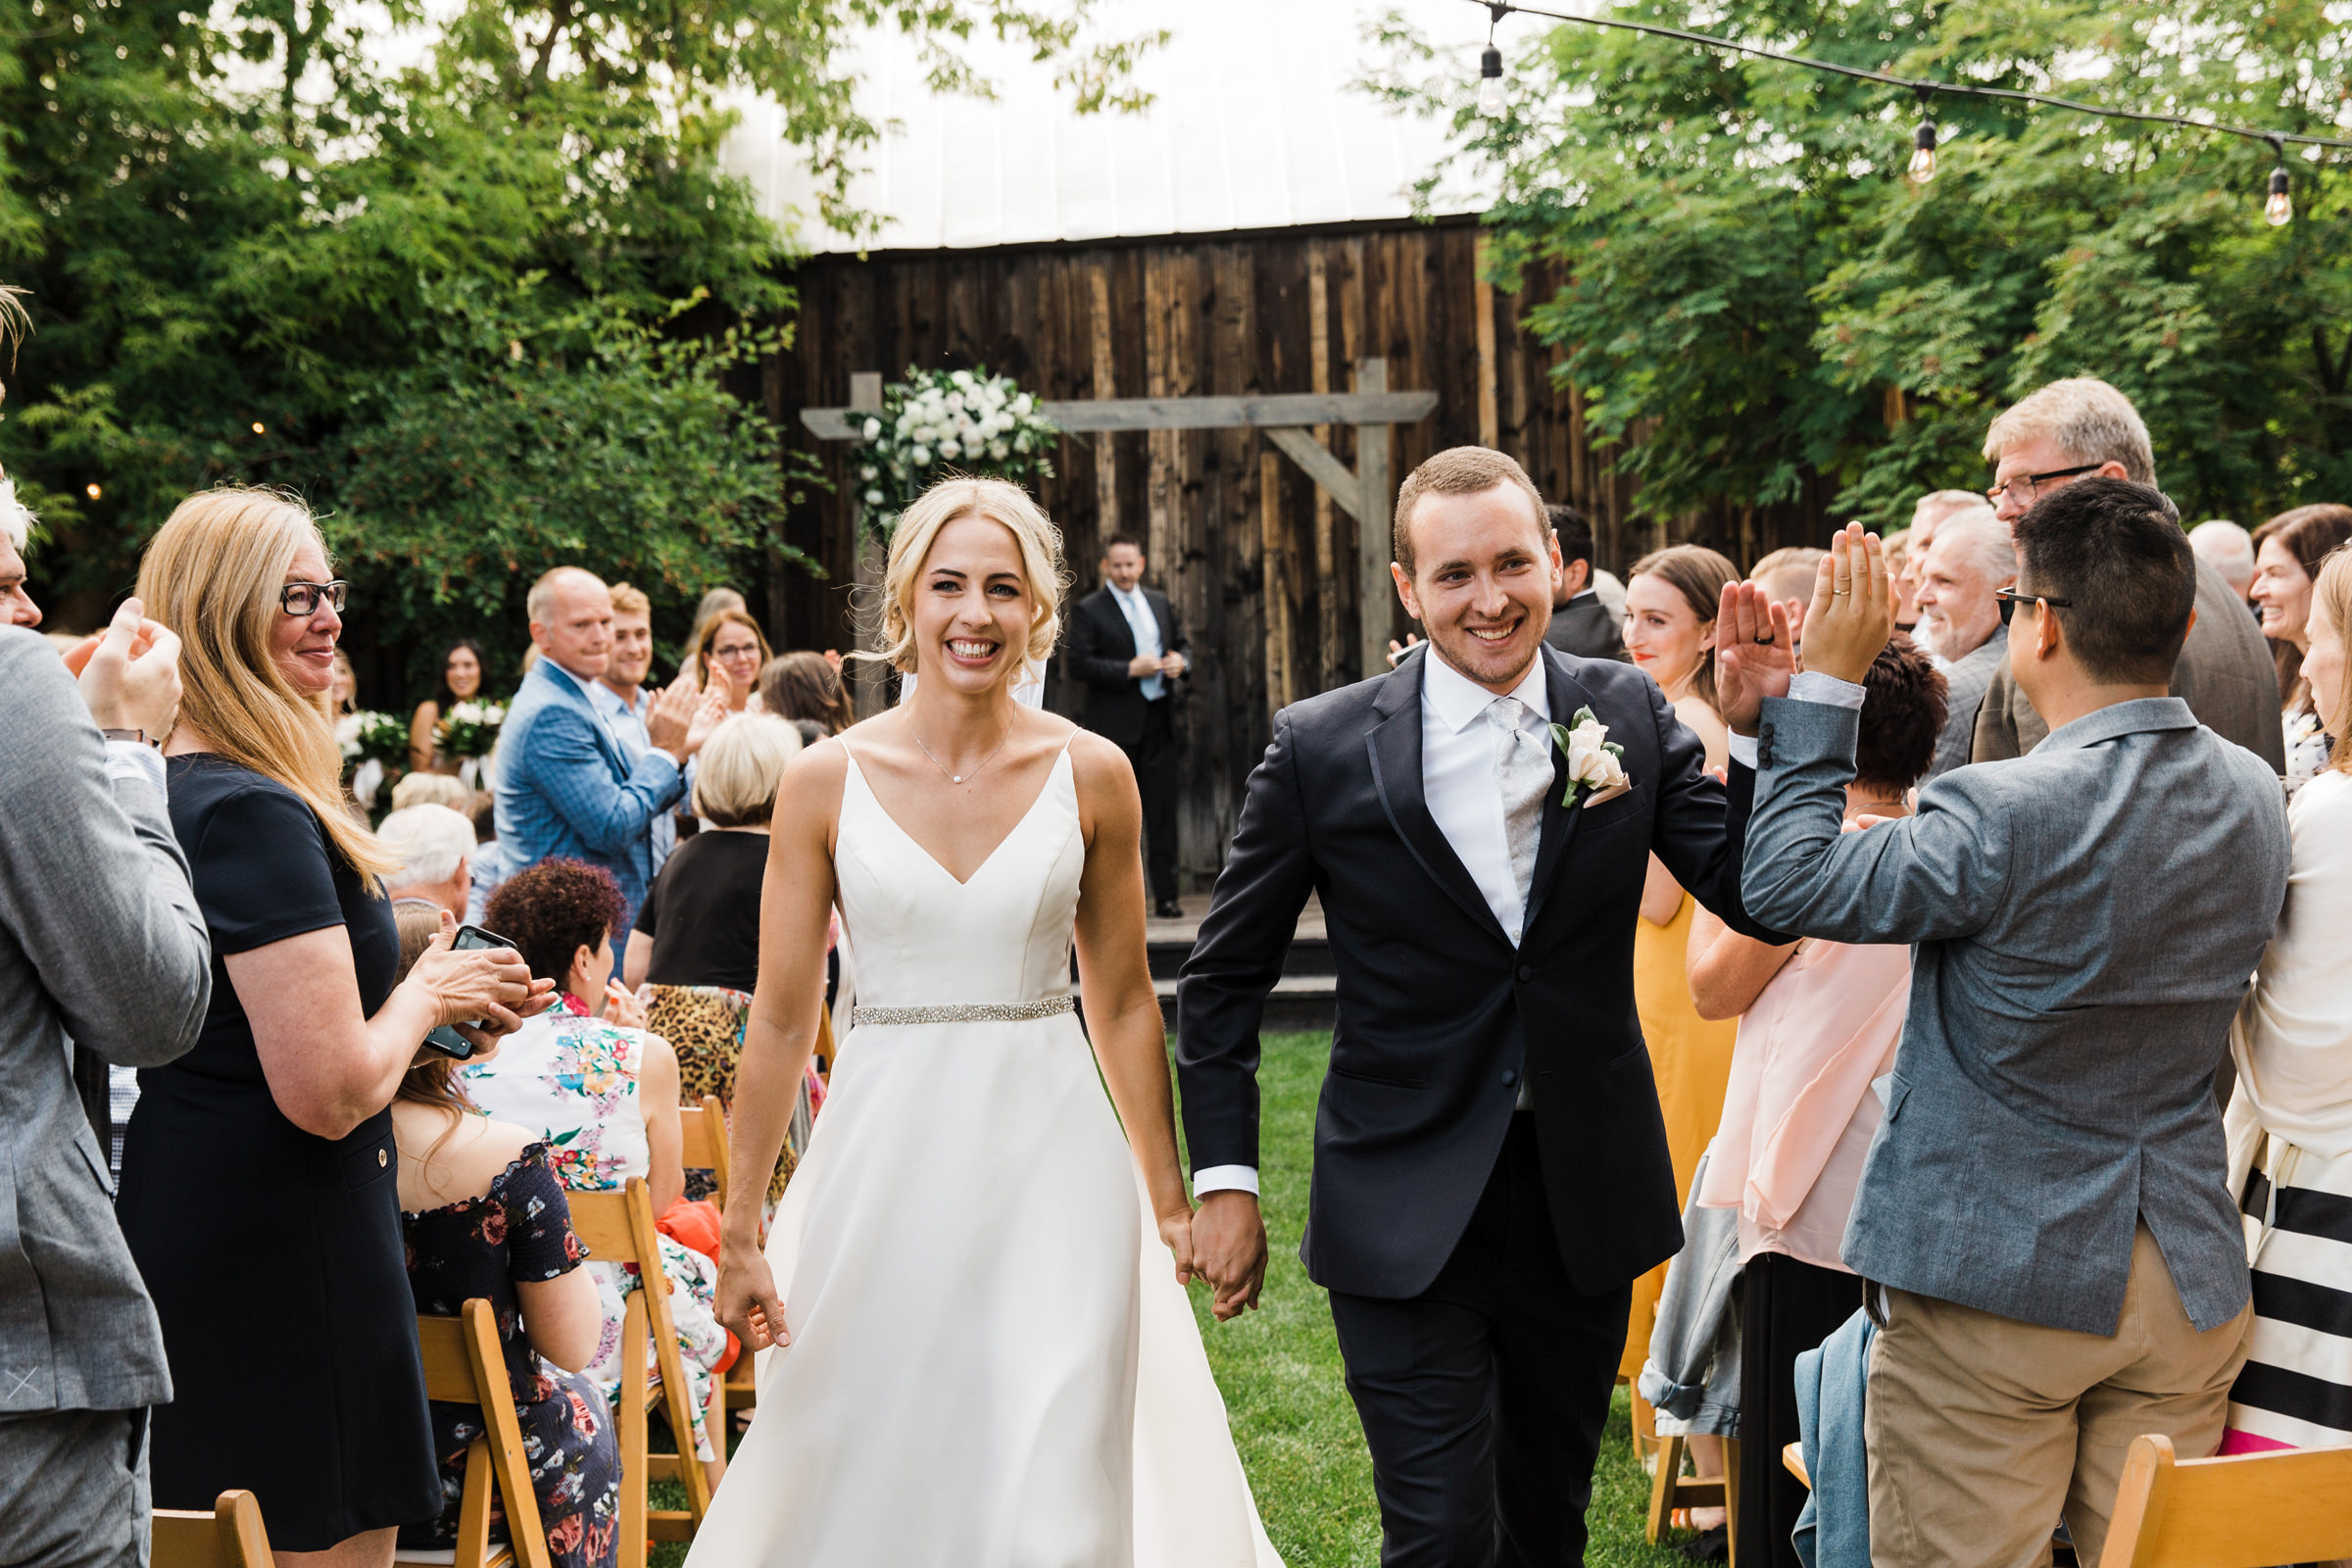 Just married couple at The Willows Lodge - photo by Stephanie Cristalli Photography